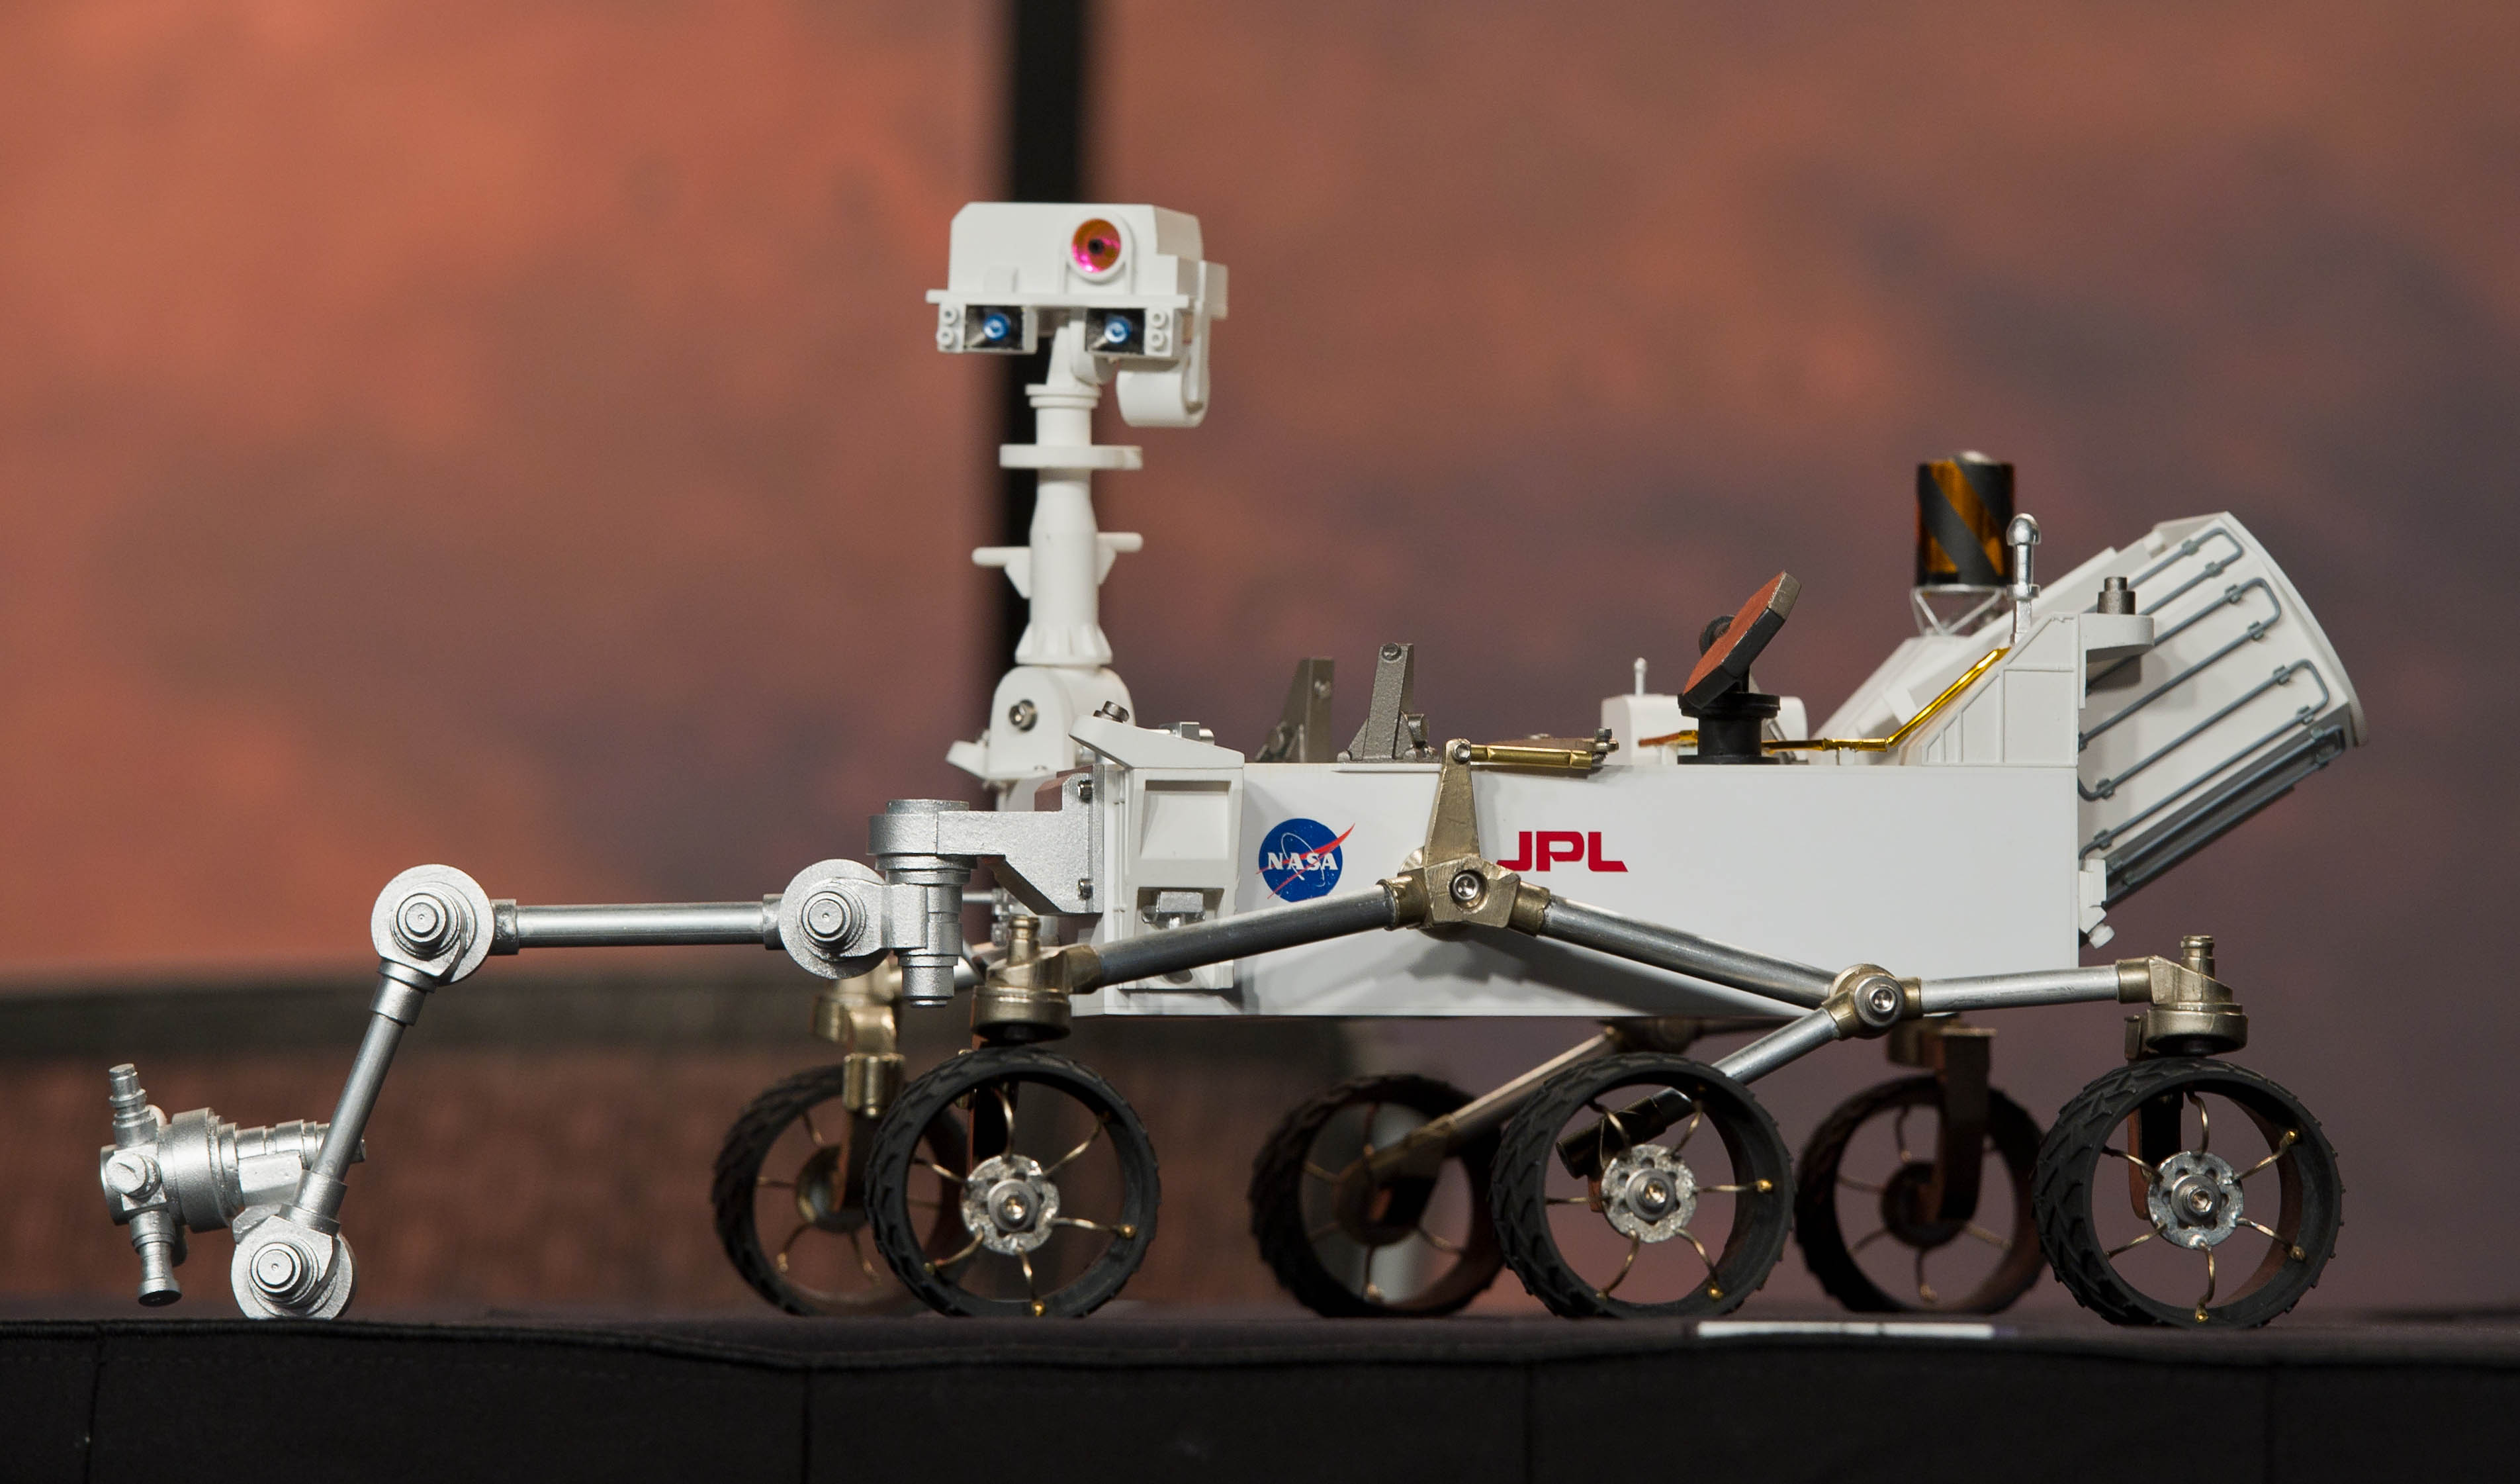 Out of Curiosity: Toy Stores Missing Mars Rover